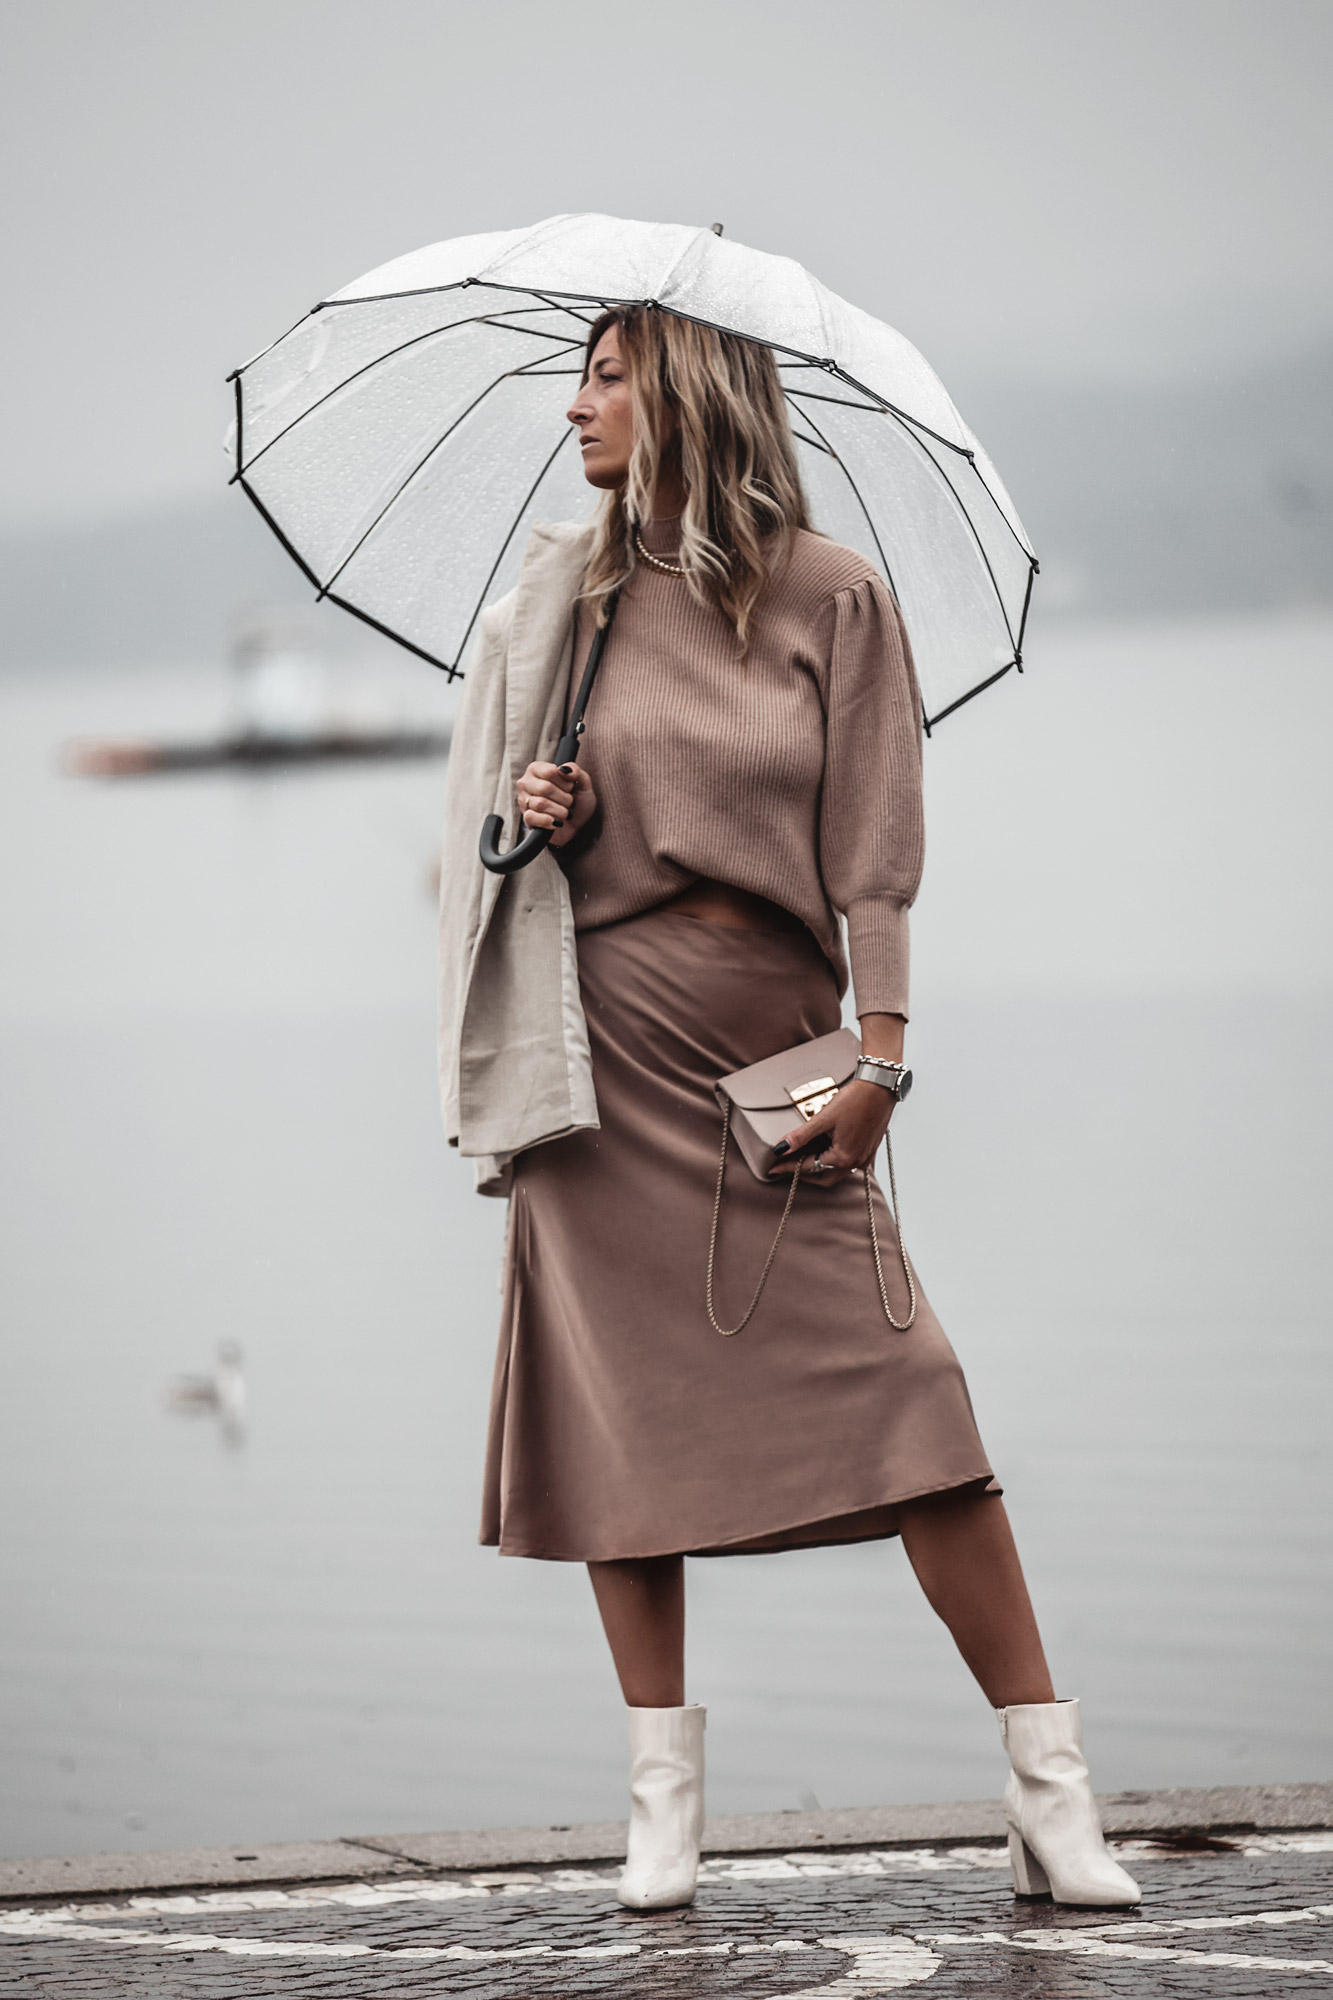 beige-outfit-satin-skirt